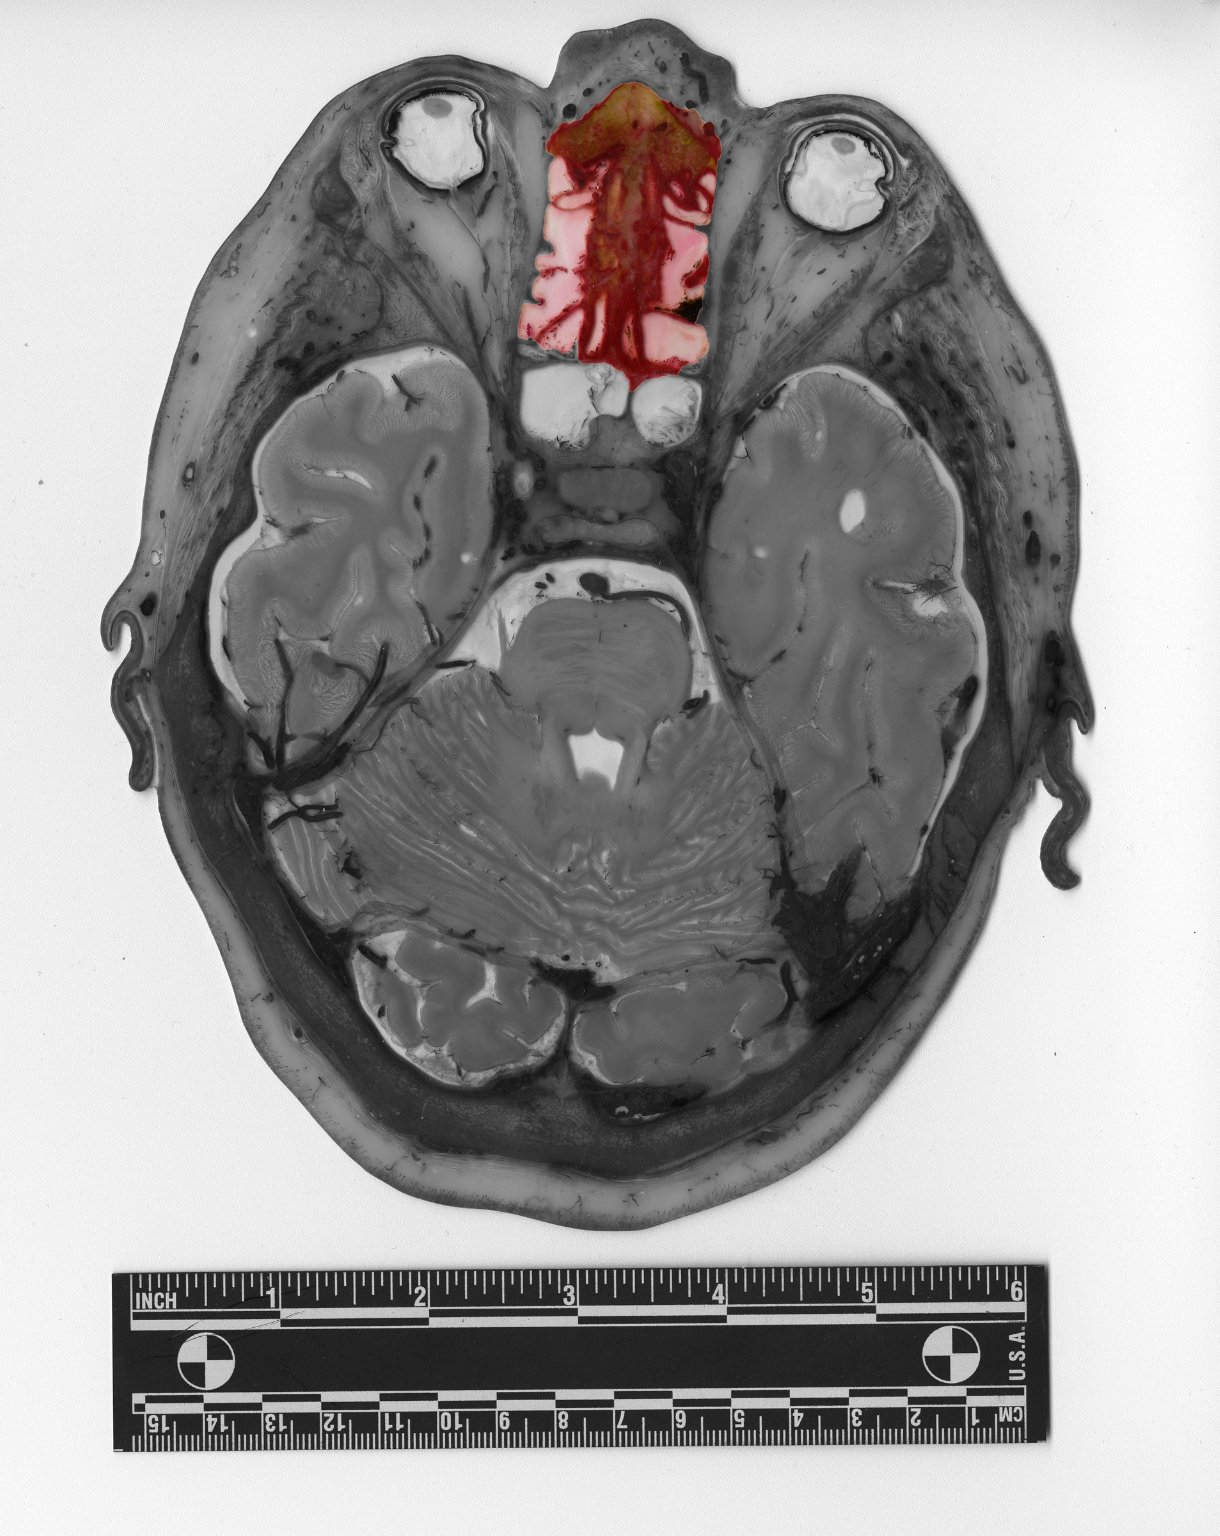 Slice of human skull and brain